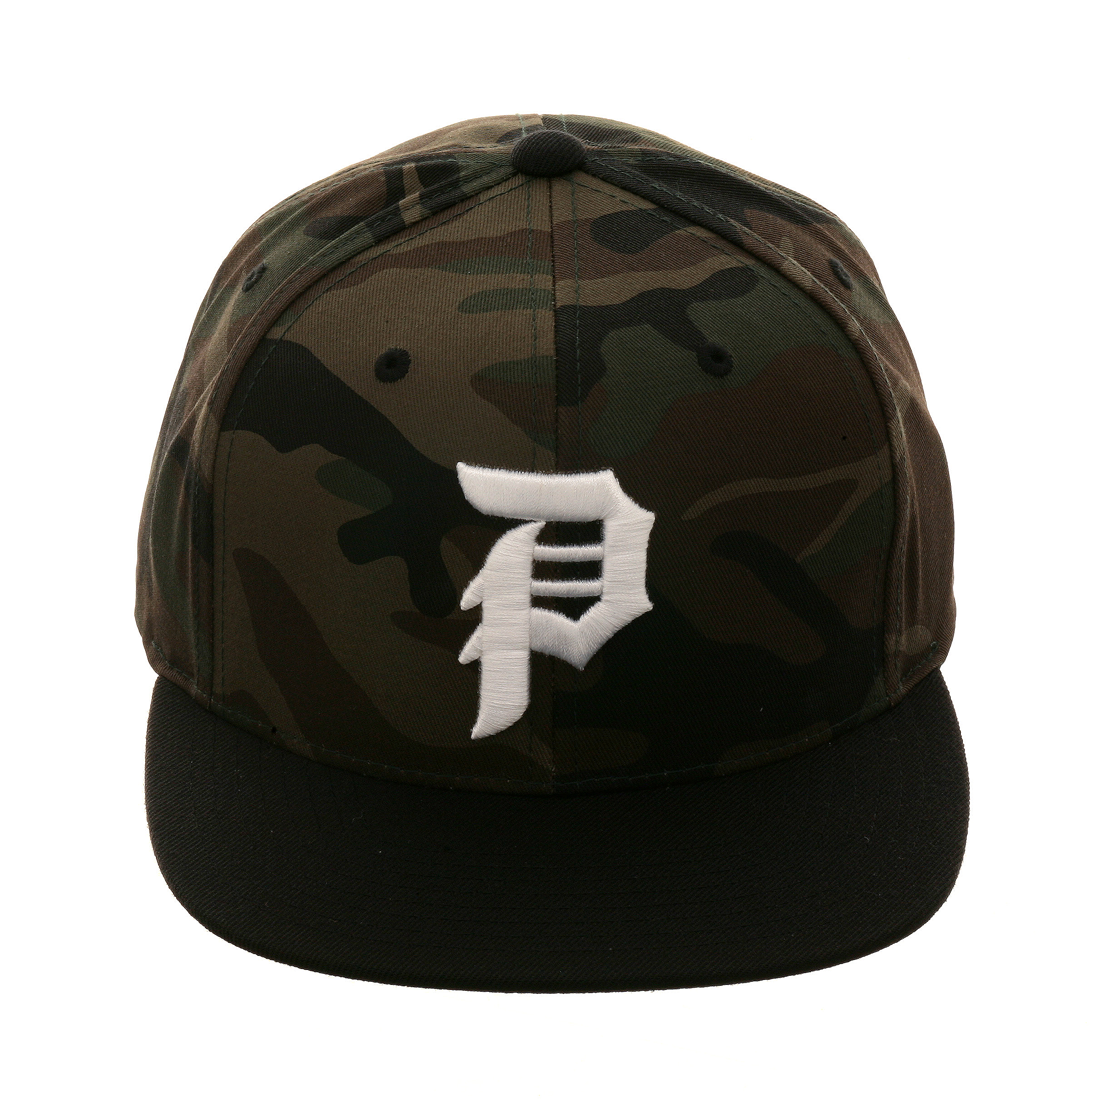 9dab2a01903 Primitive Dirty P Camo Snapback Hat - 2T Camouflage